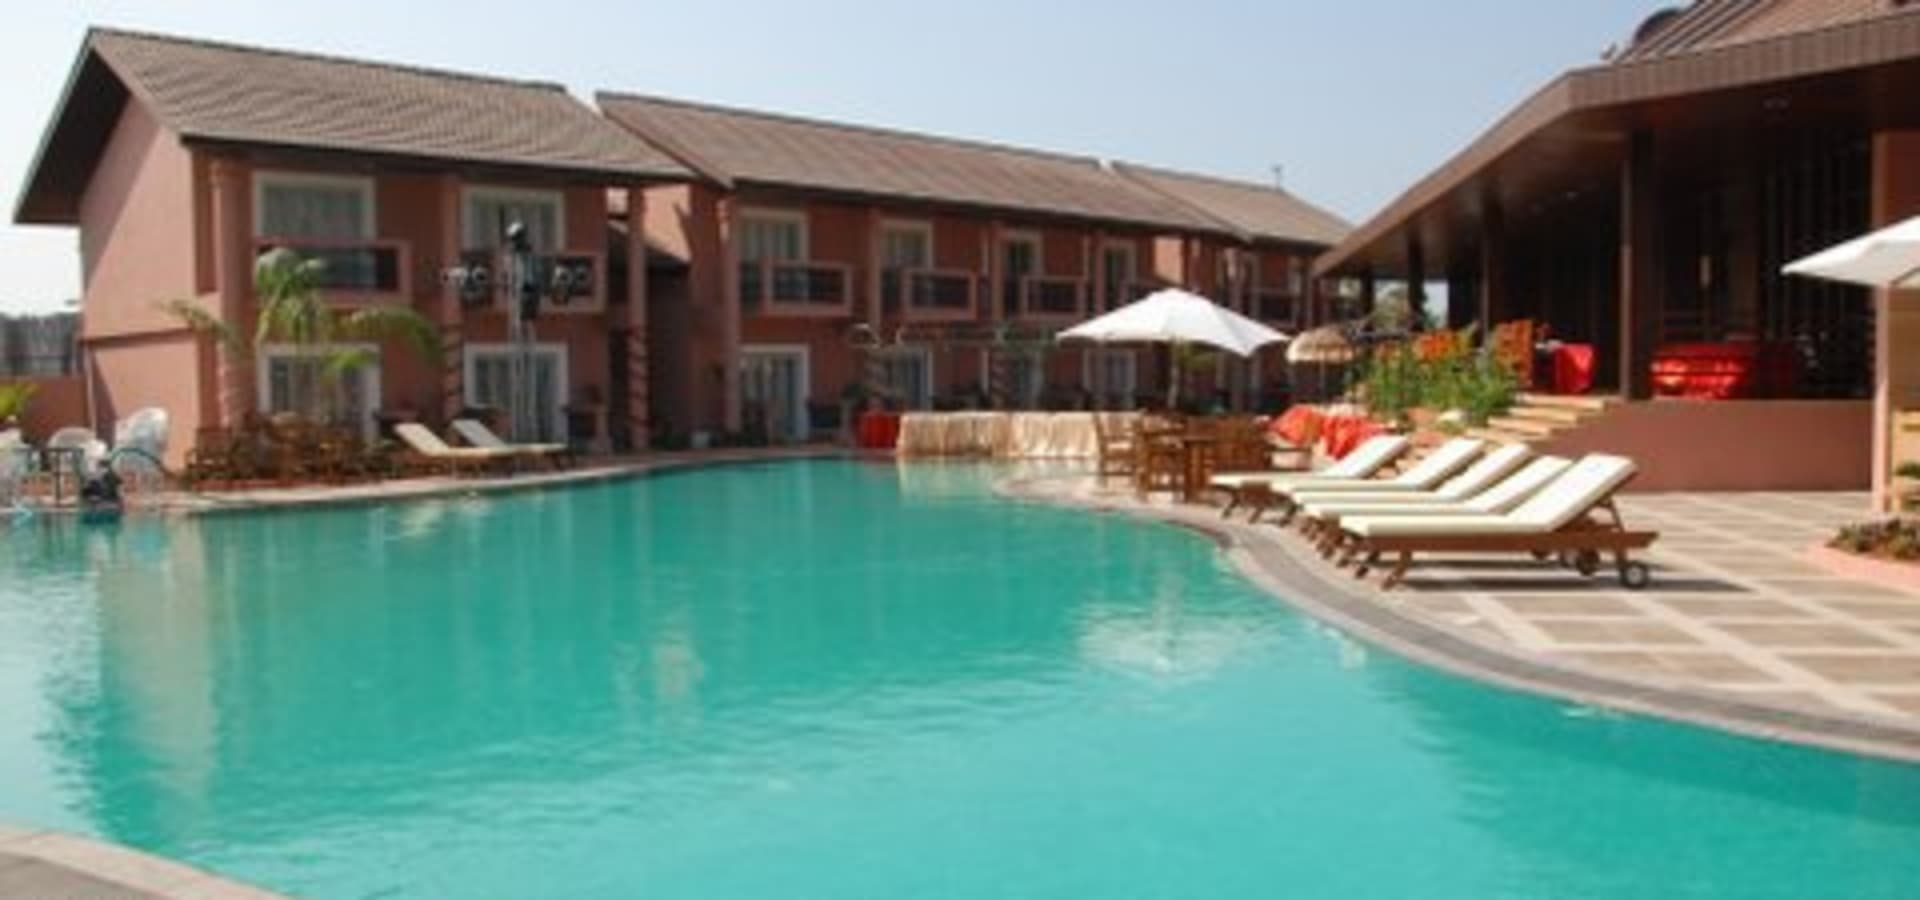 Crystal swimming pools india pvt ltd swimming pool - Swimming pool construction in india ...